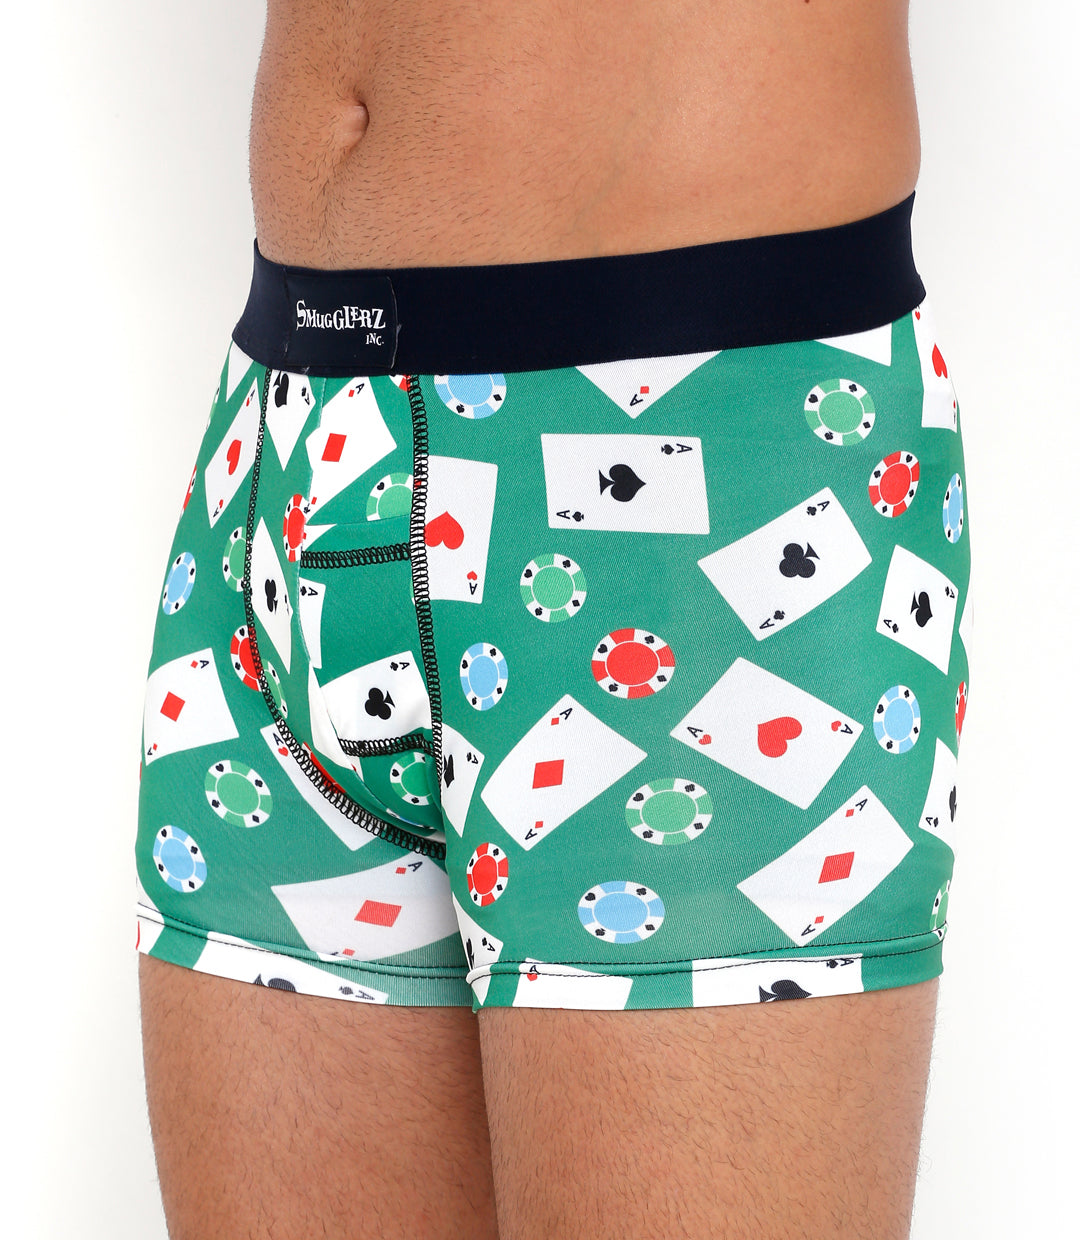 THE GAMBLER PACK - (Pack of 2 pc Smundies)